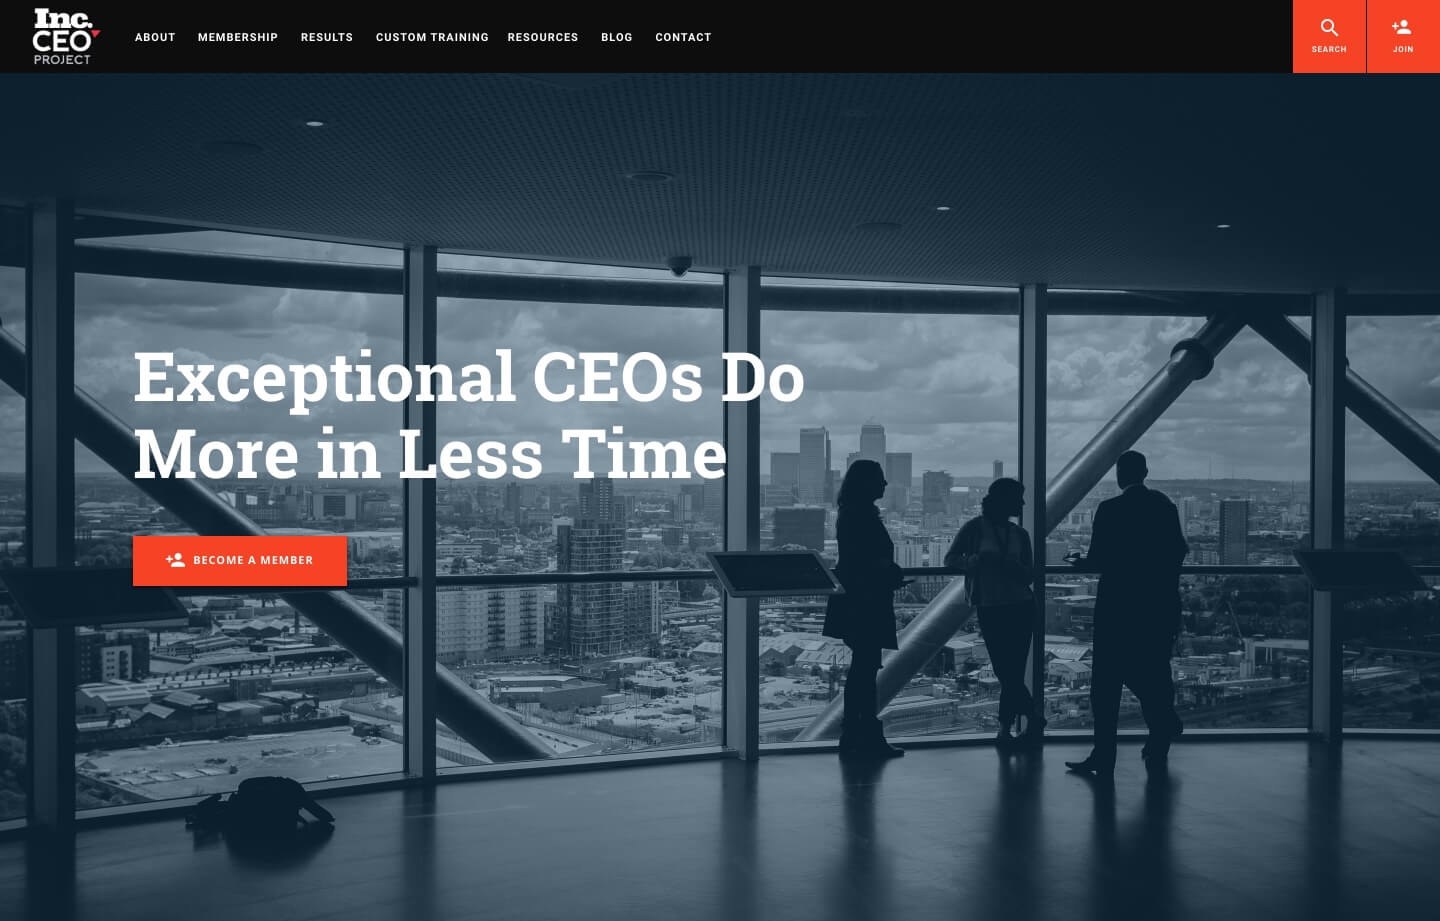 professional services and consultants website for INC Ceo Project